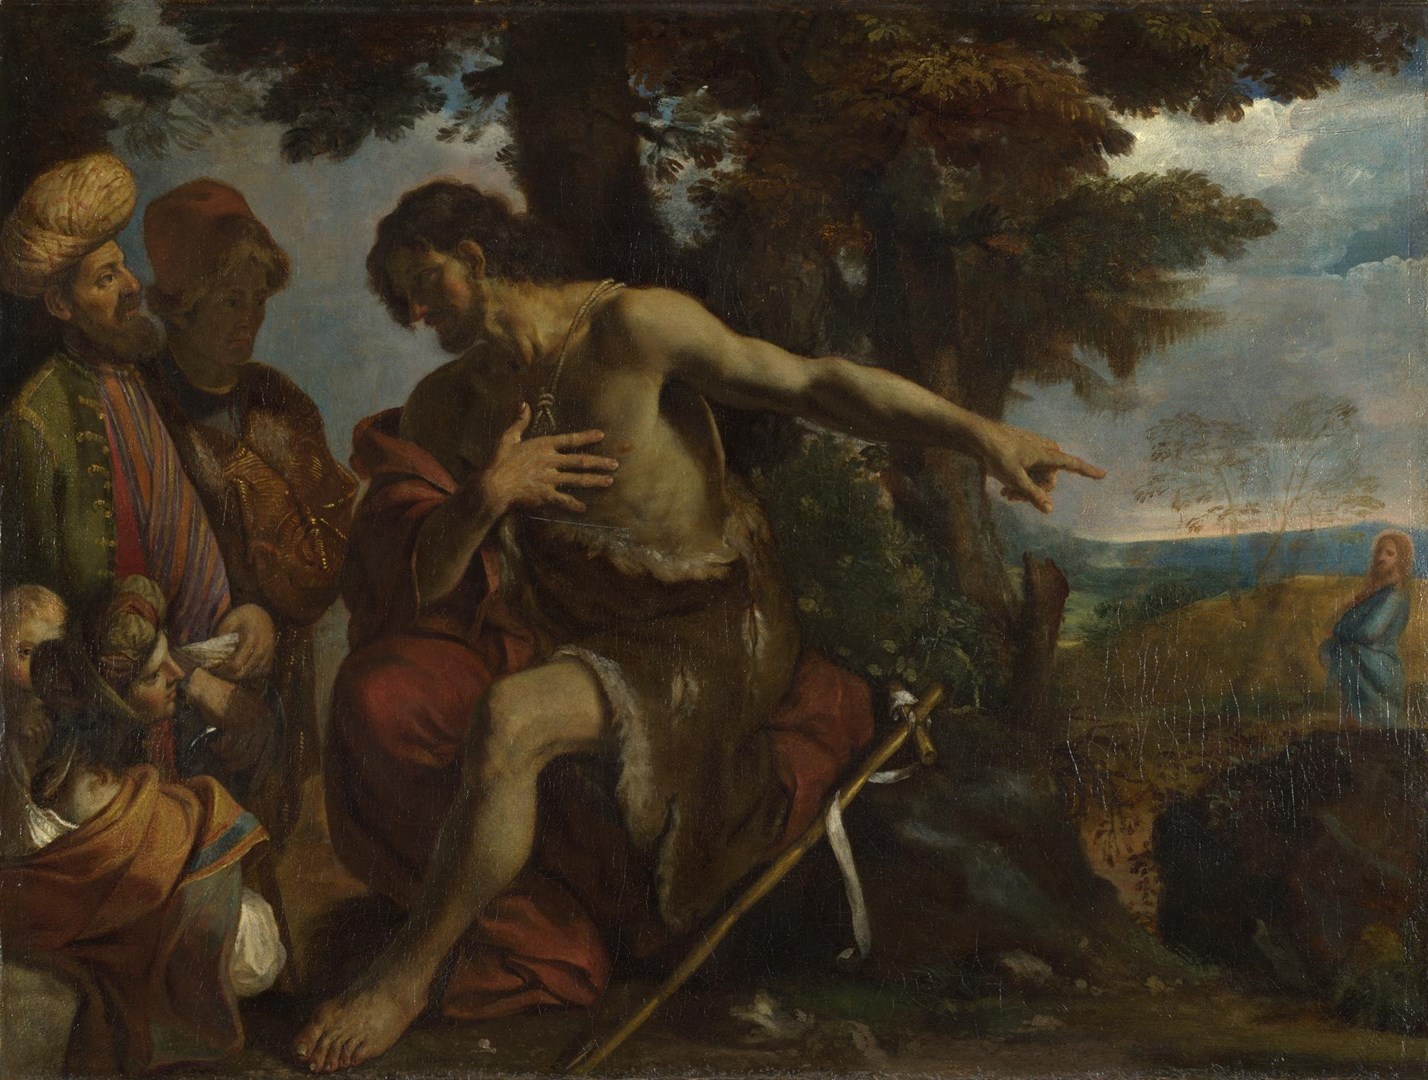 Saint John the Baptist preaching in the Wilderness by Pier Francesco Mola